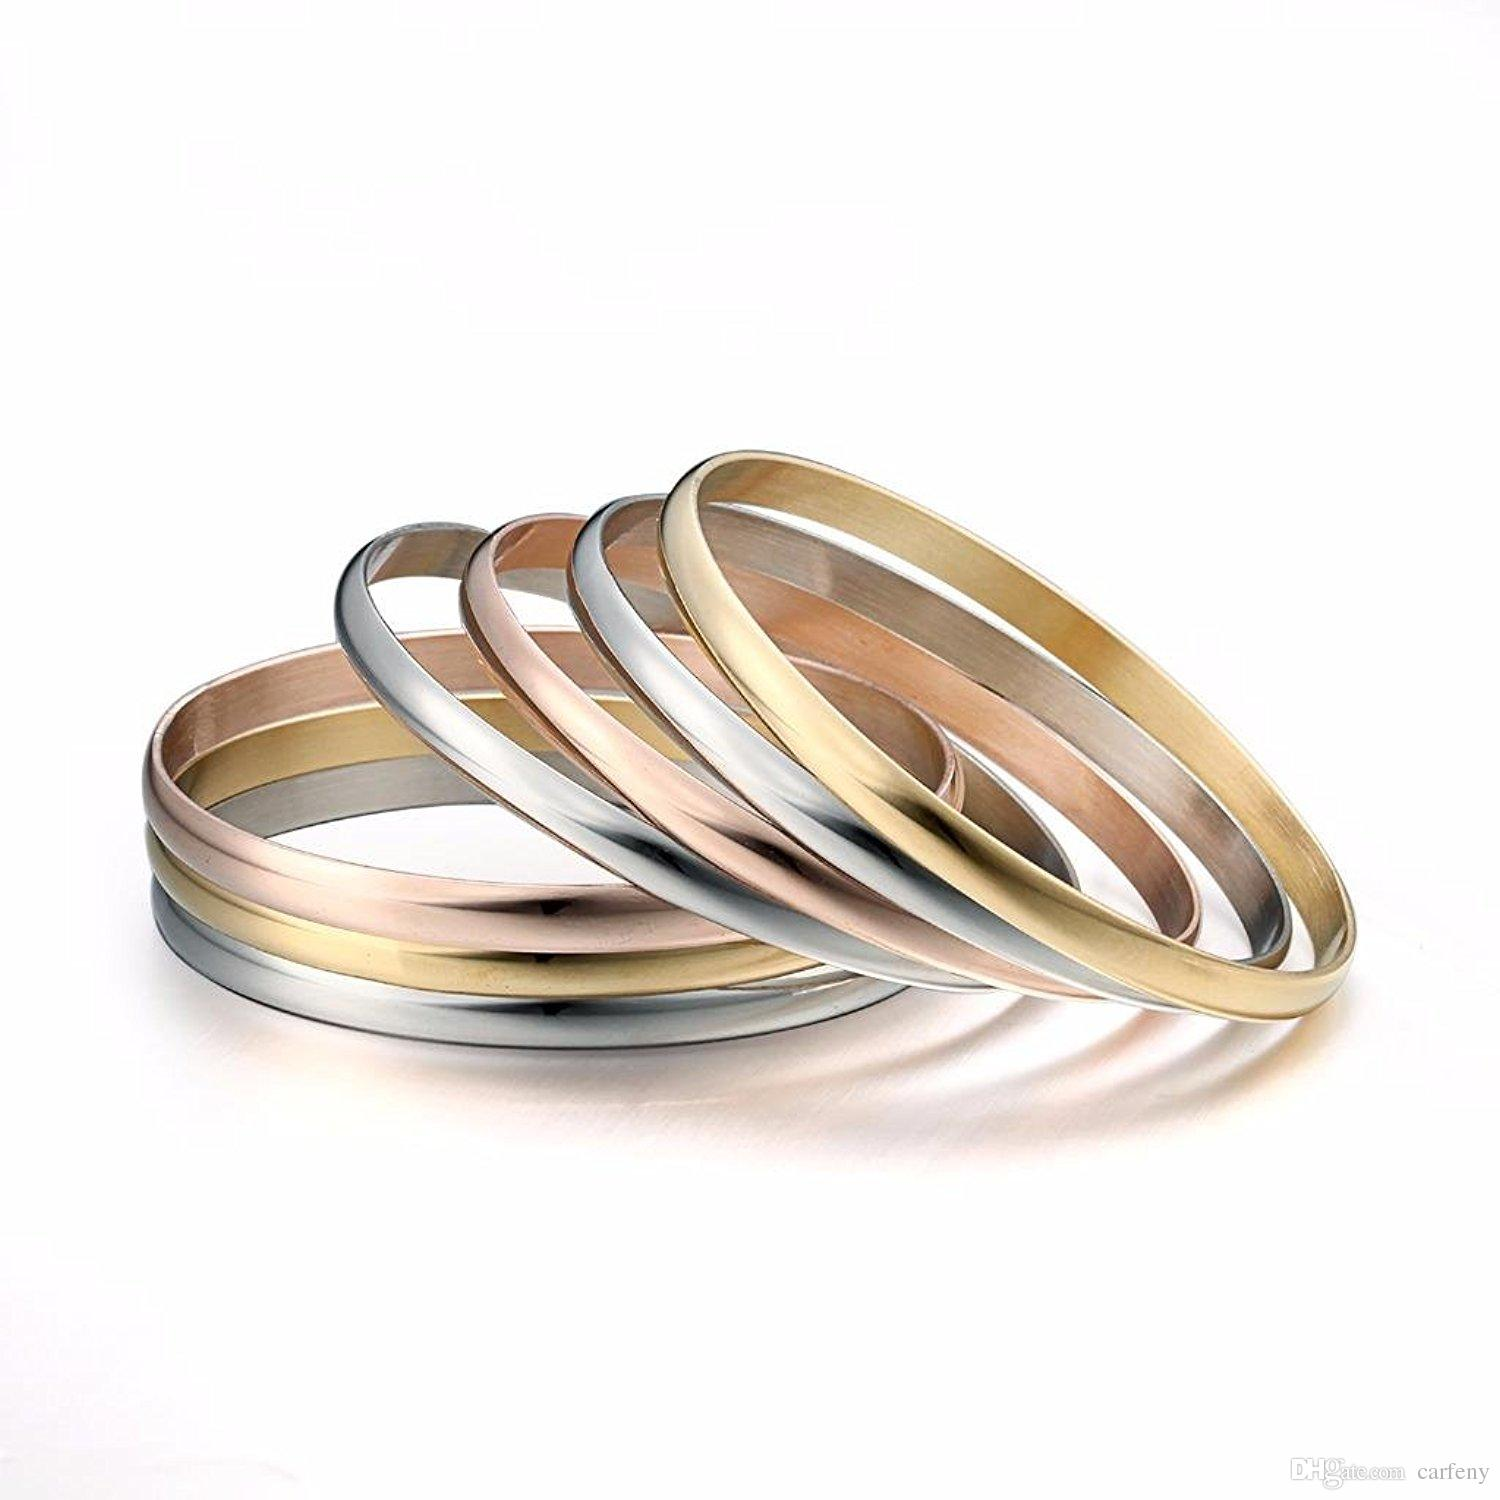 at id jewelry org david twisted bangle women for img j pair z bangles bracelets gold webb